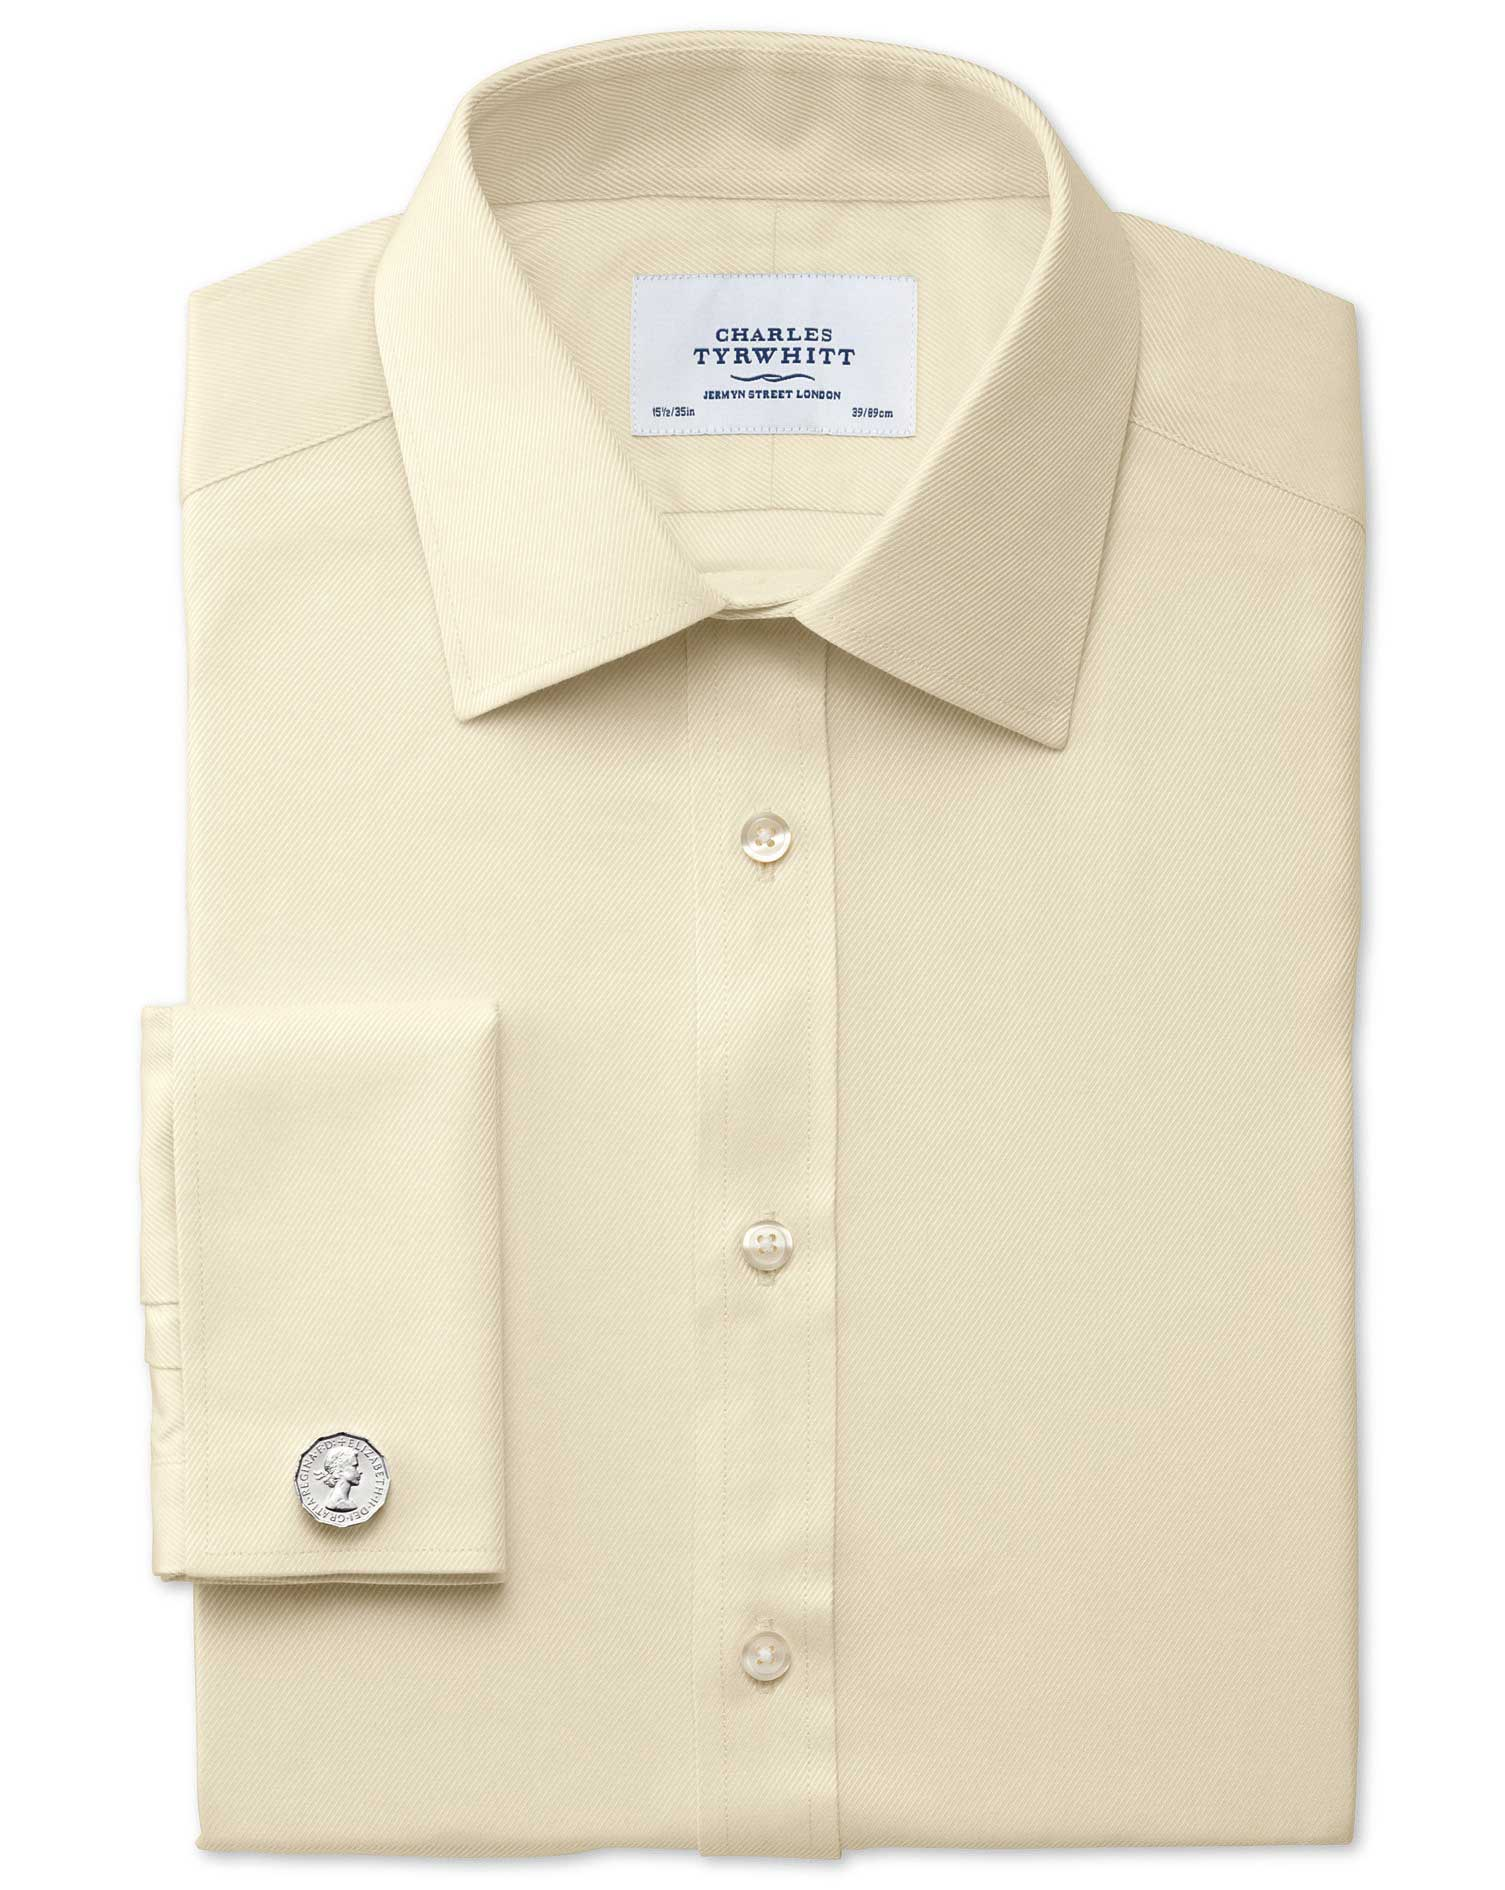 Extra Slim Fit Egyptian Cotton Cavalry Twill Yellow Formal Shirt Single Cuff Size 16.5/38 by Charles